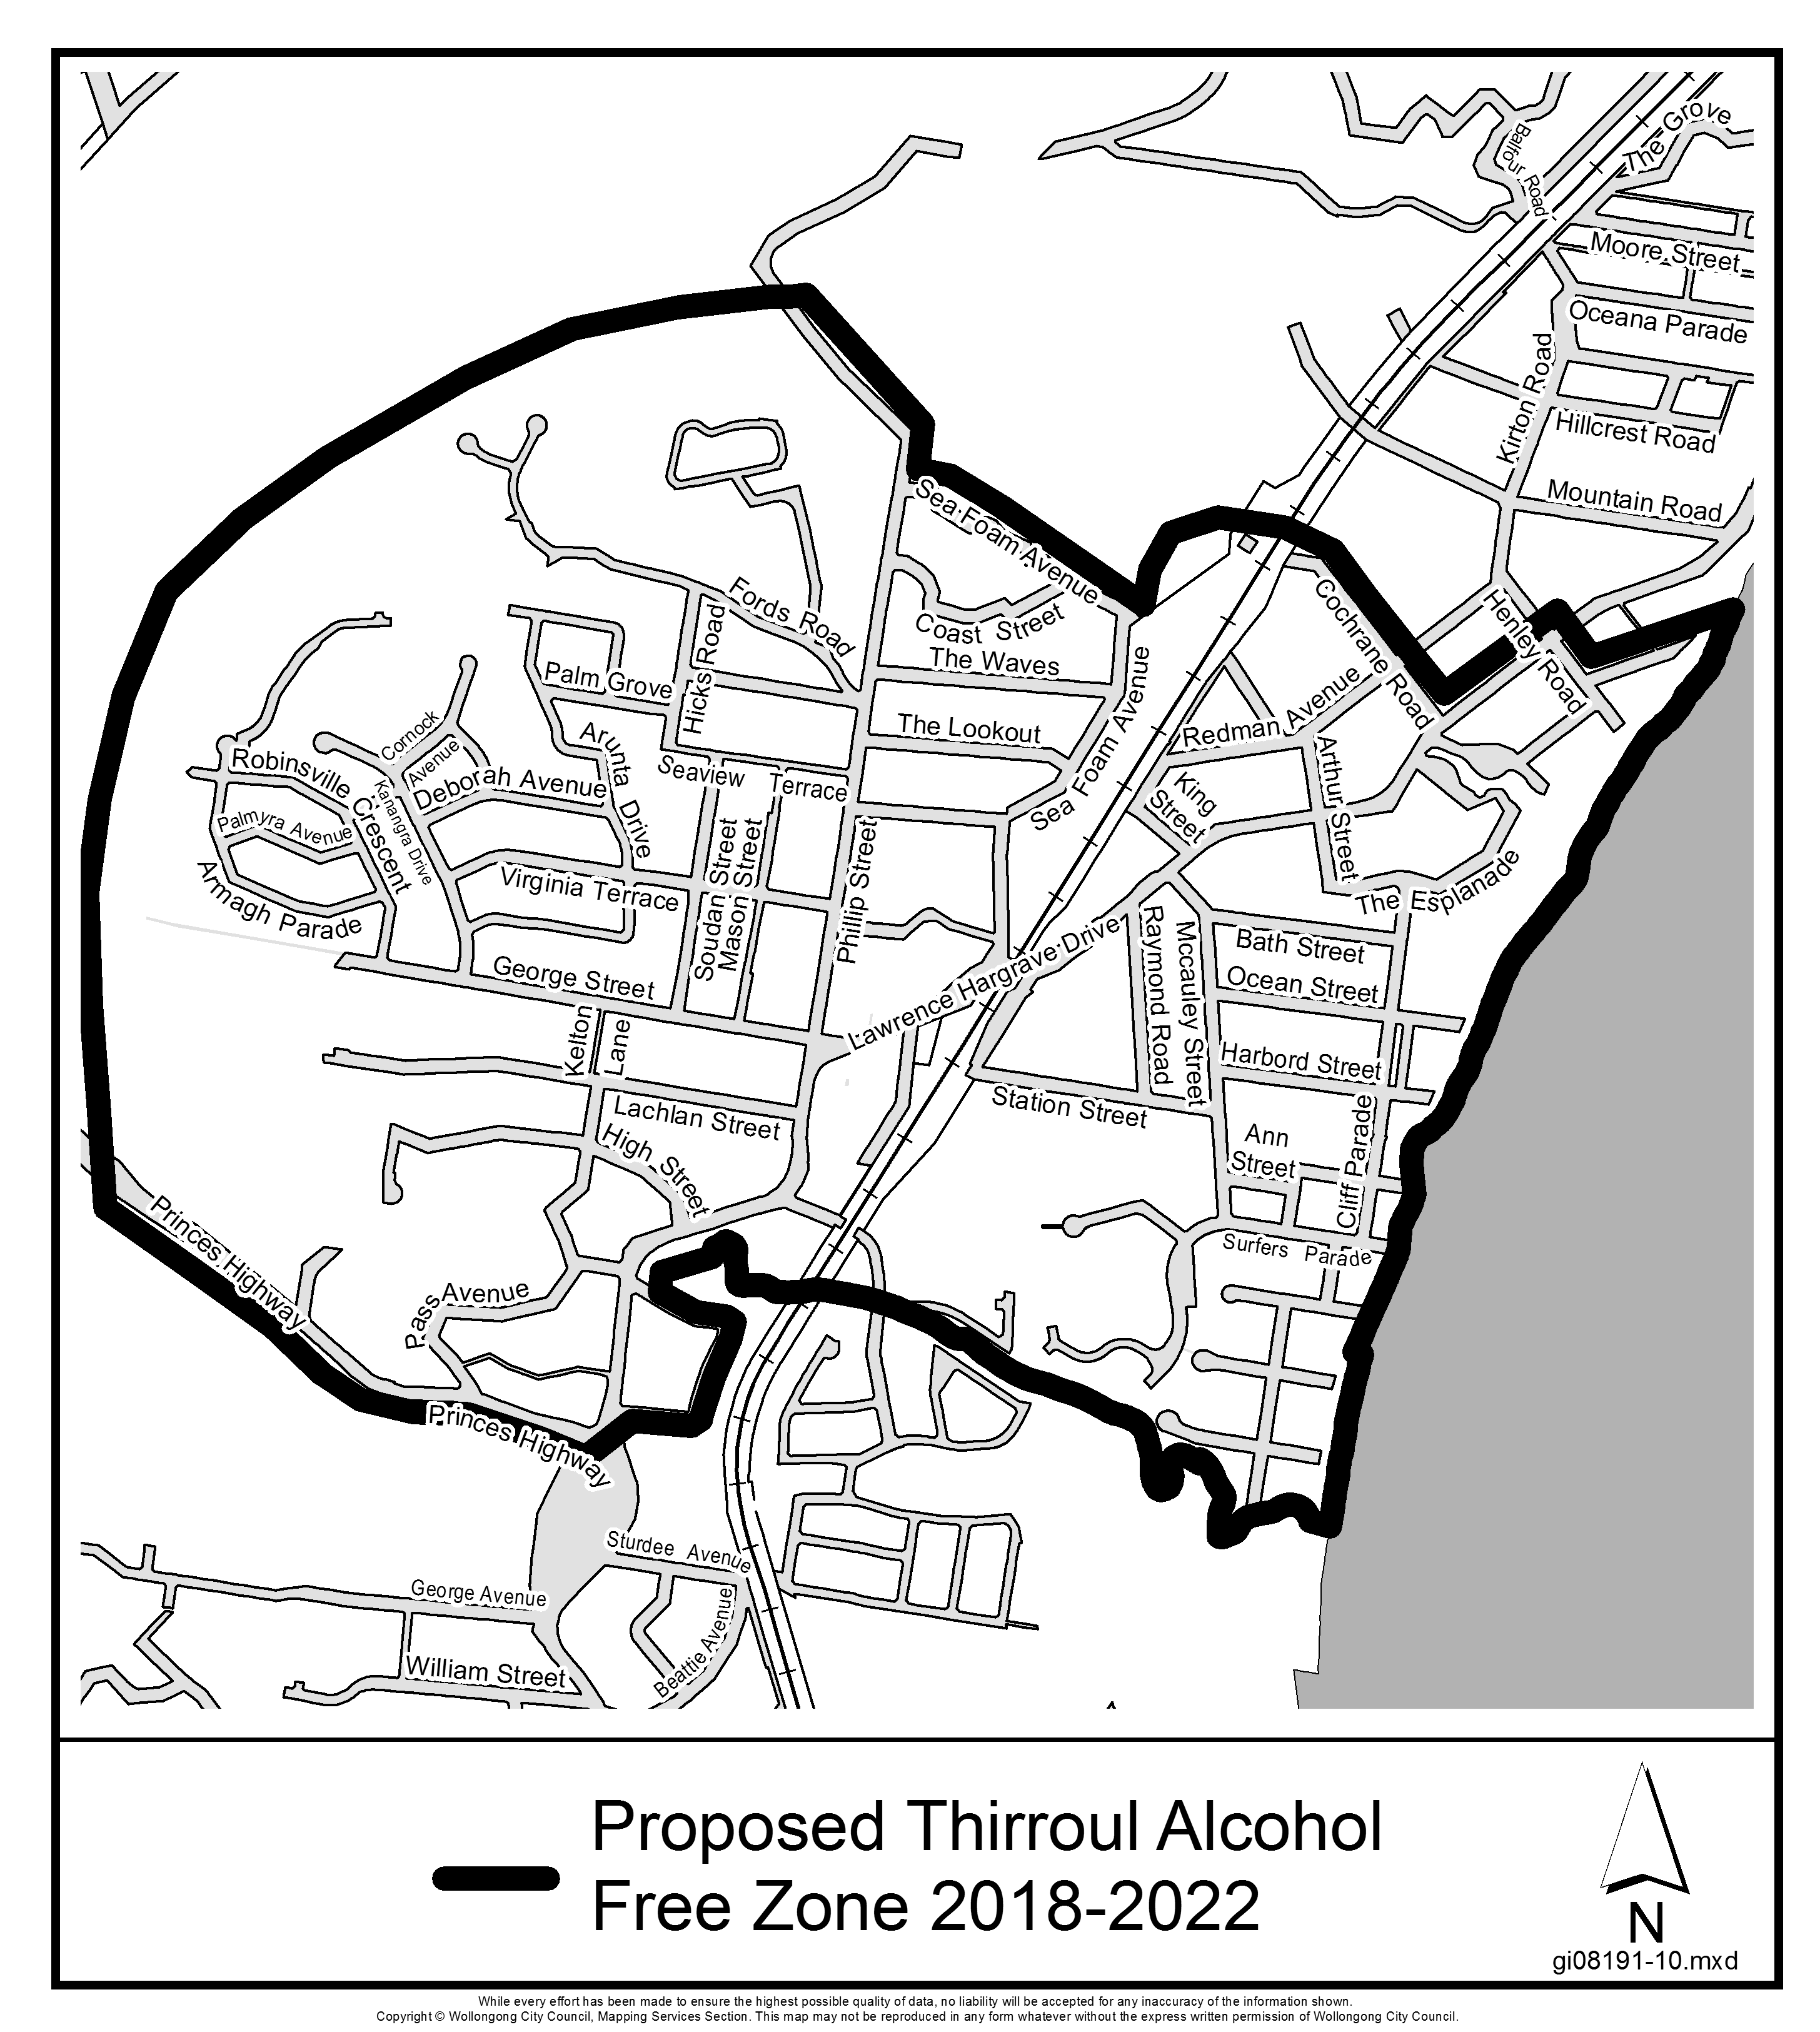 Proposed thirroul alcohol free zone 2018 2022